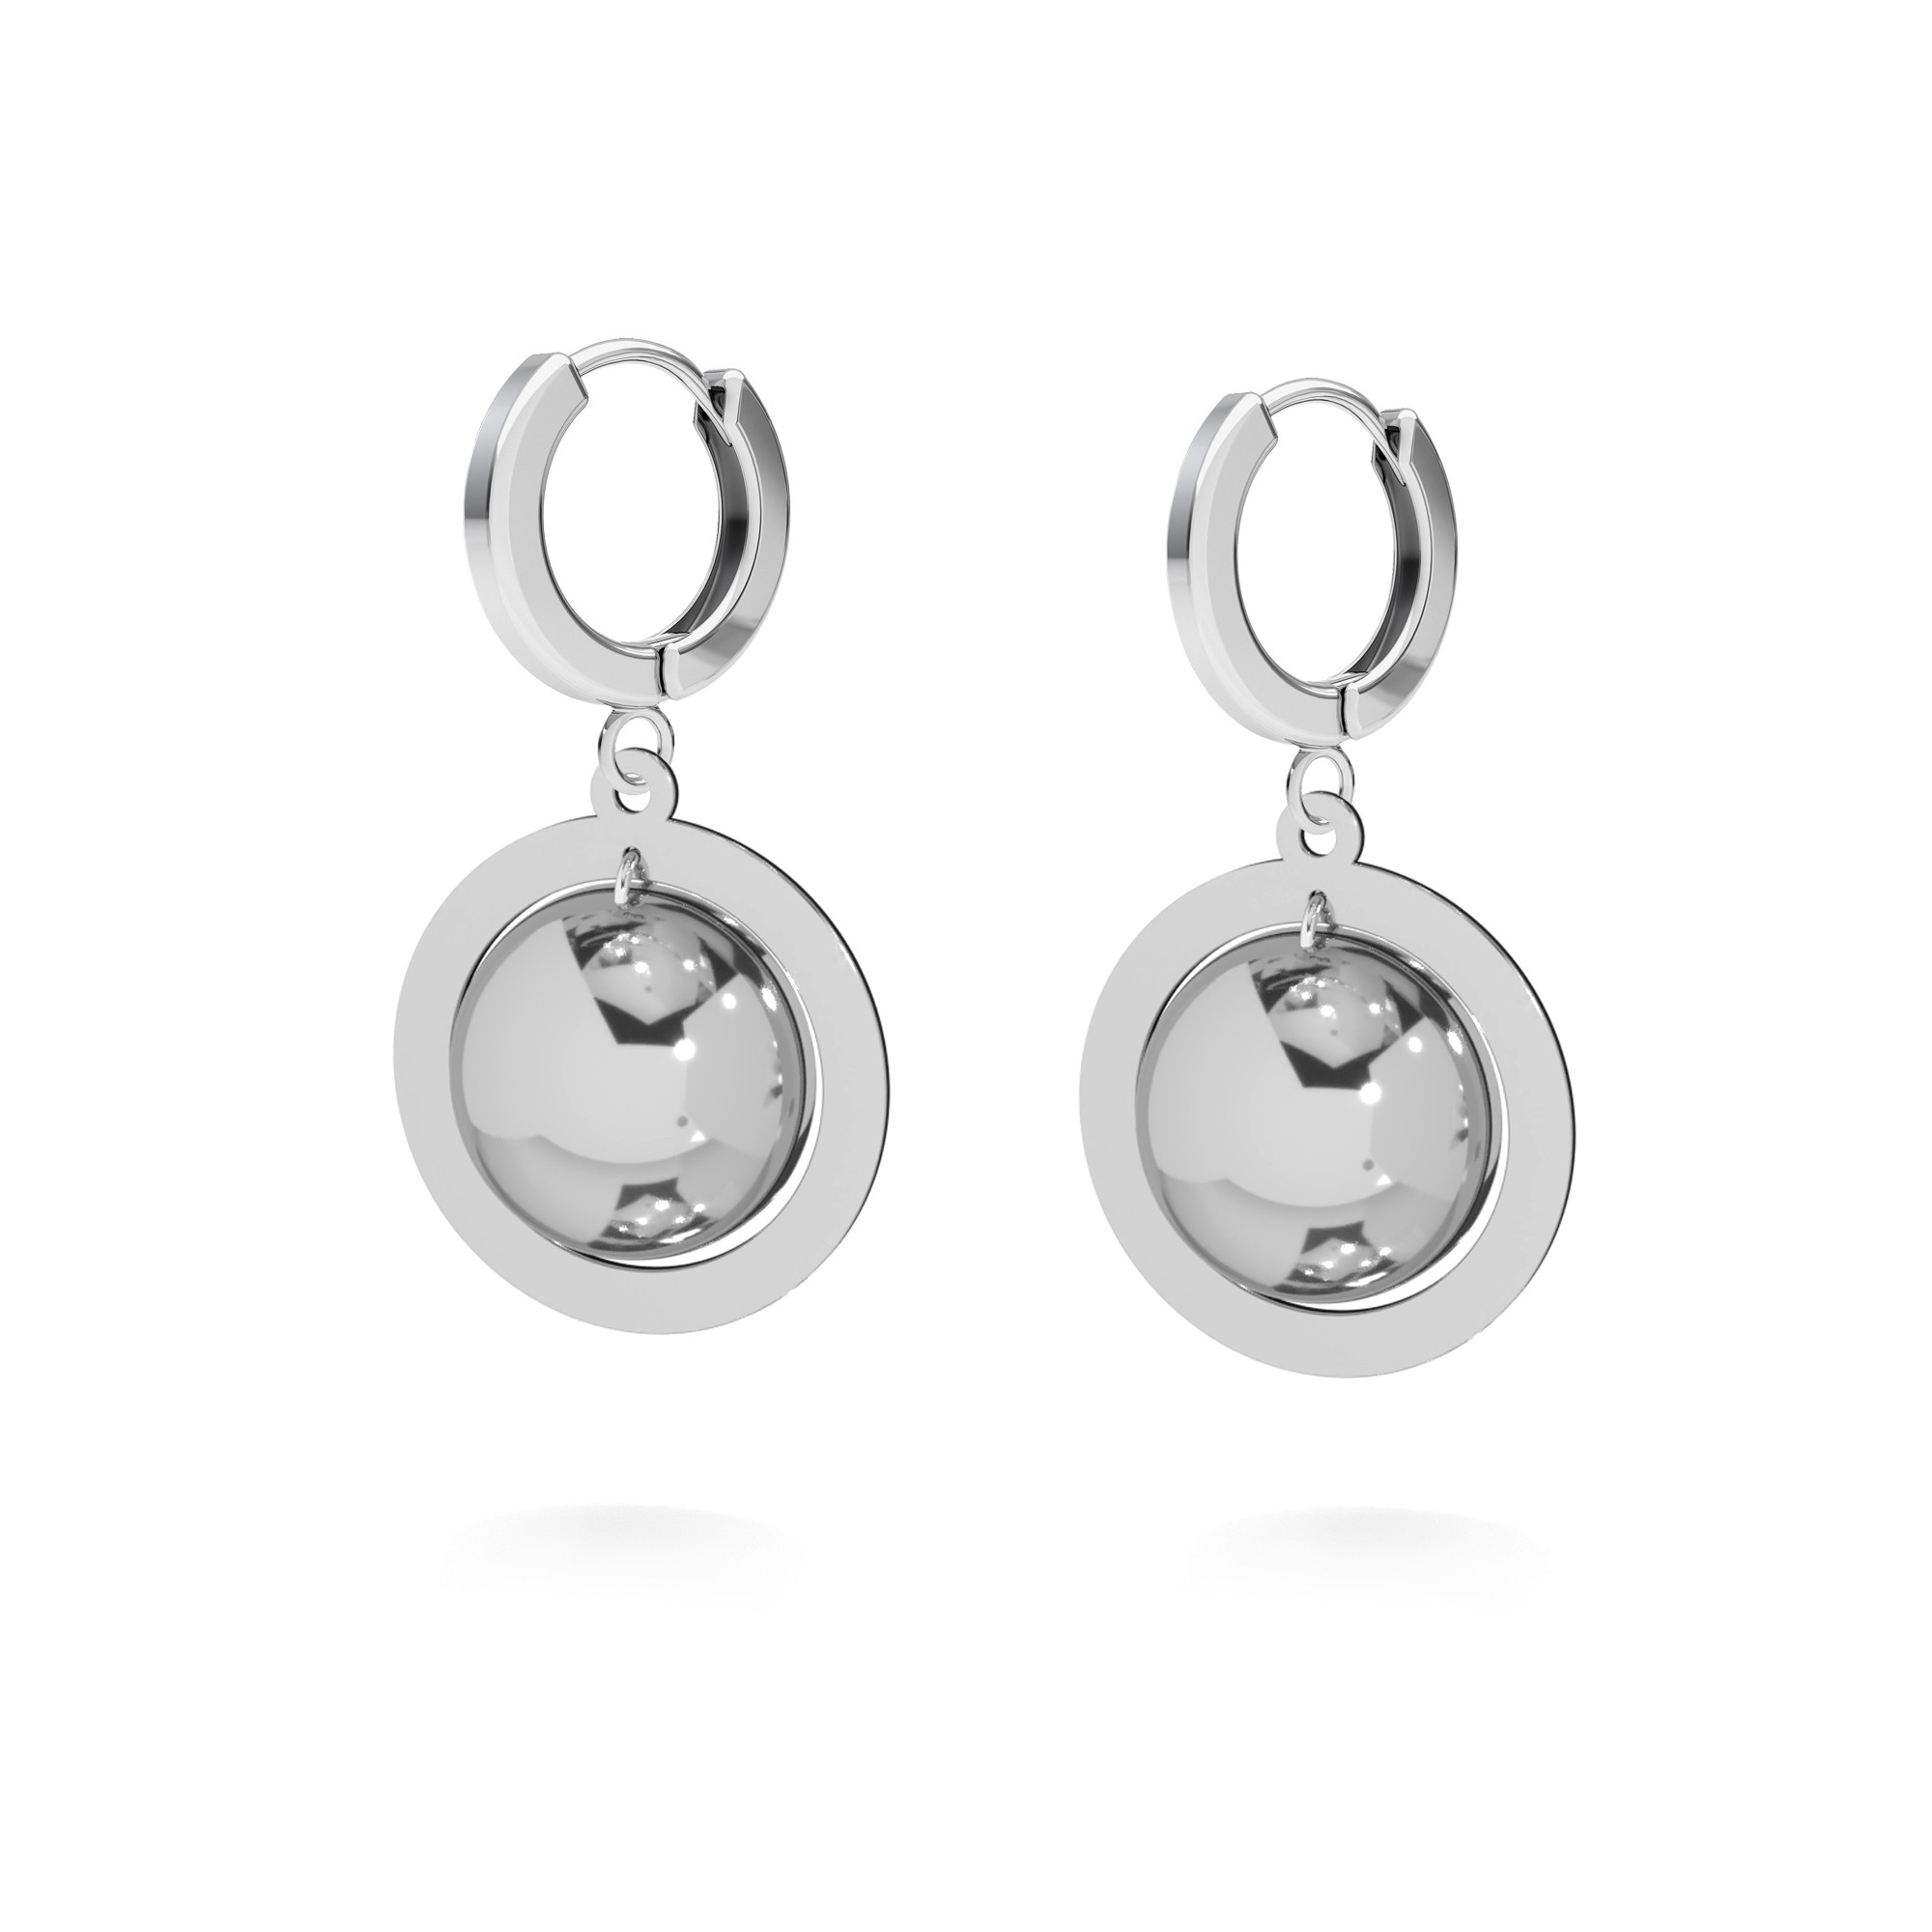 Square earrings sterling silver 925